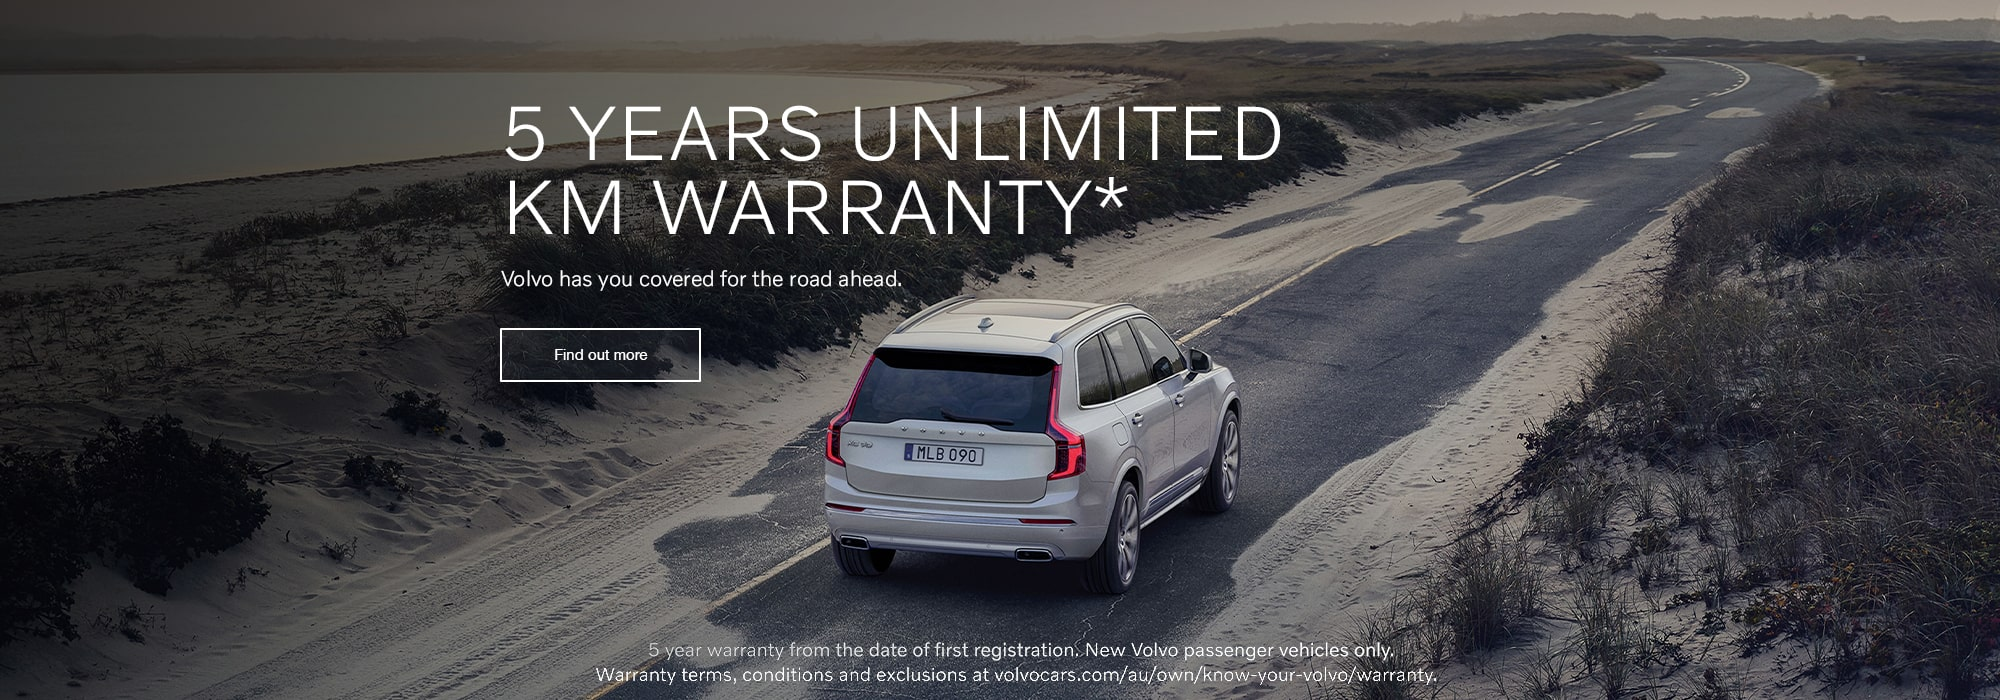 Volvo has you covered for the road ahead.